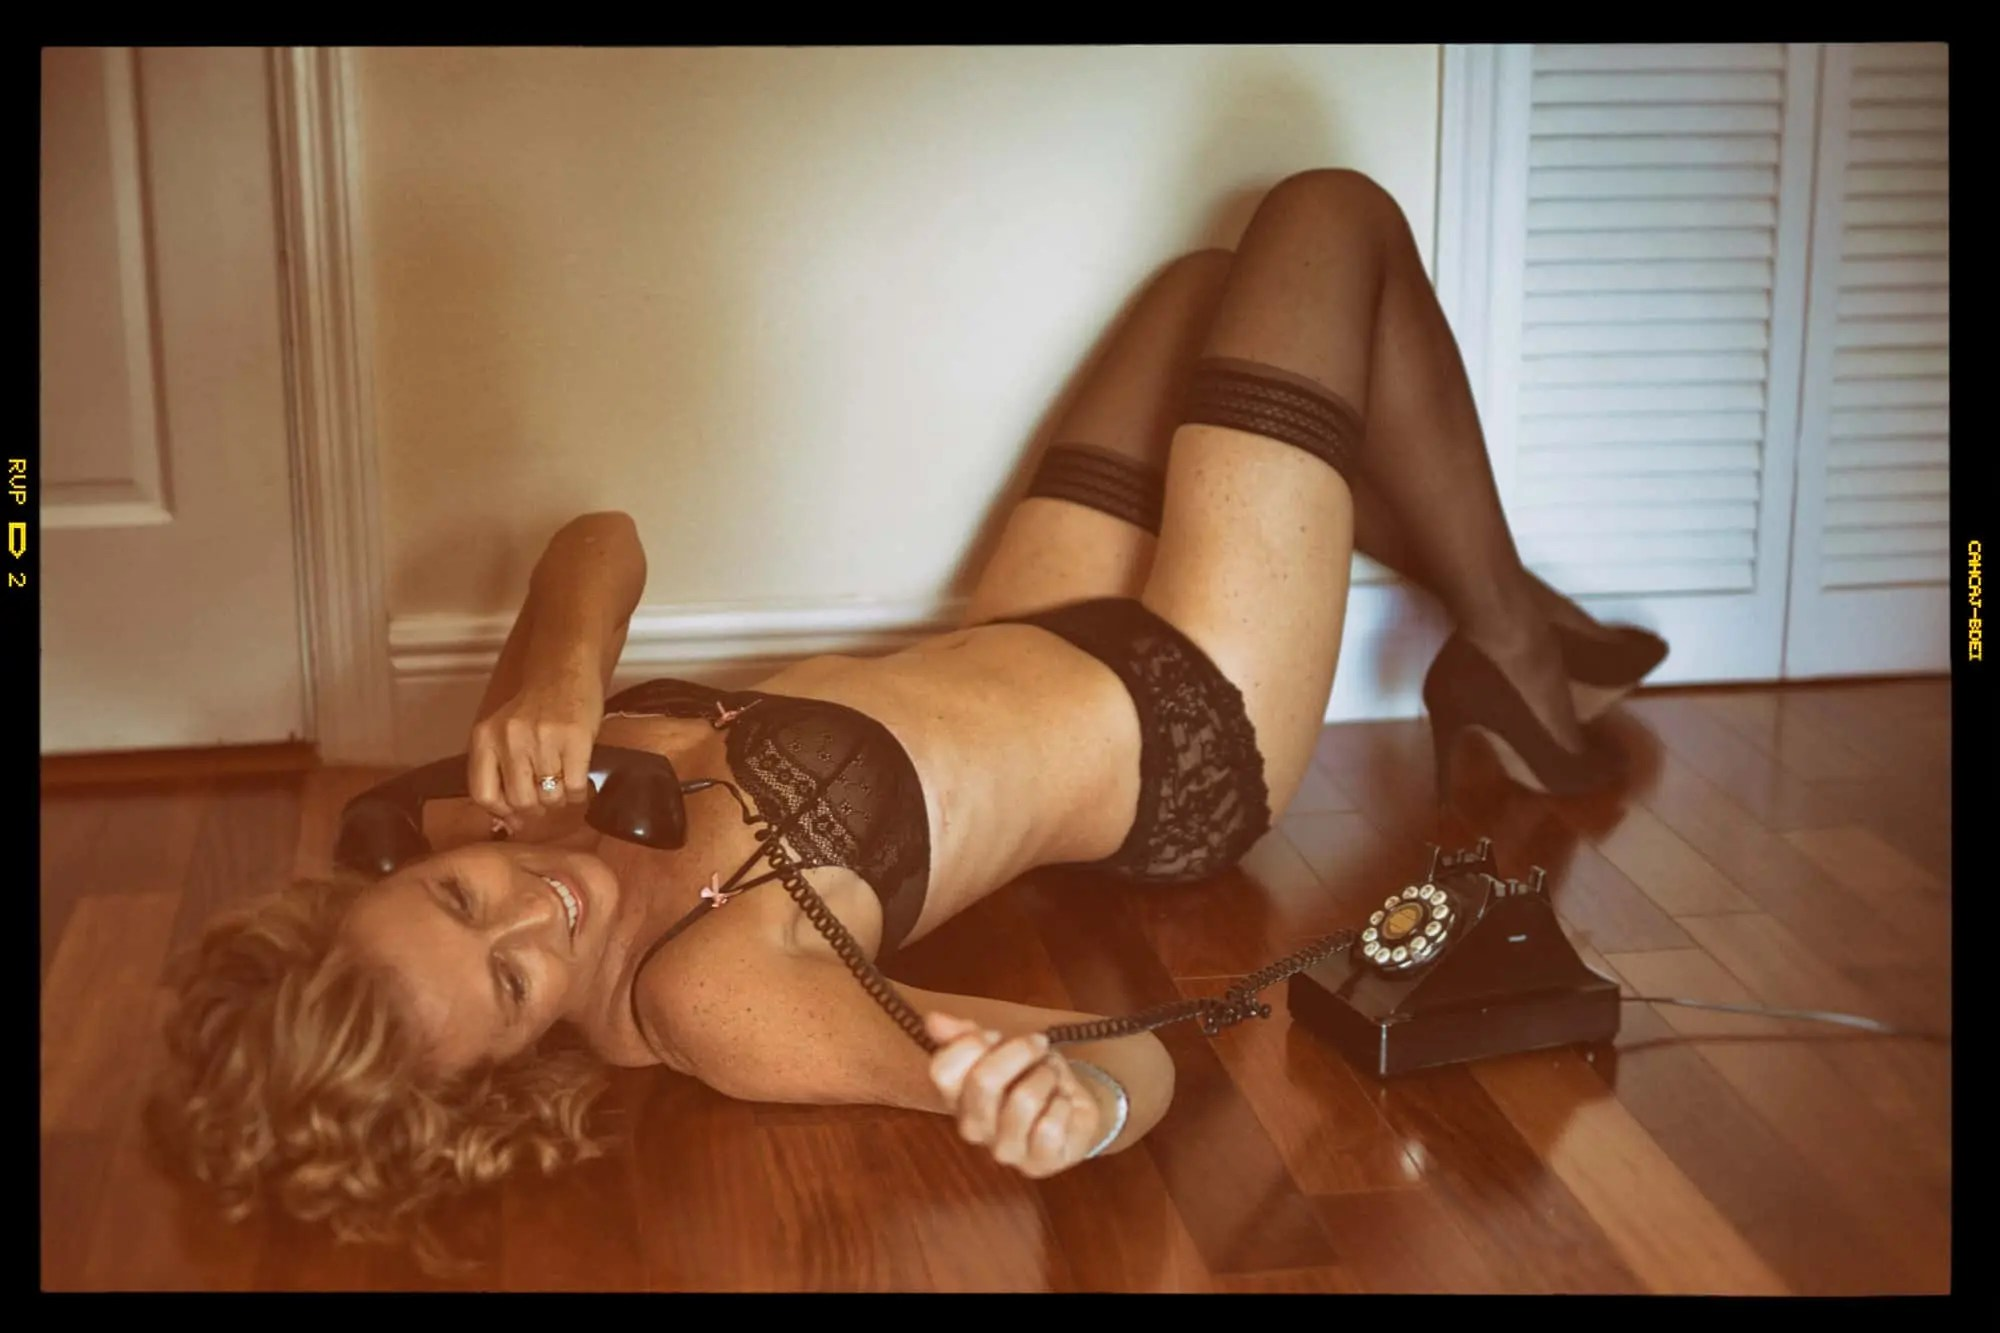 Retro Pin-Up Boudoir Photography